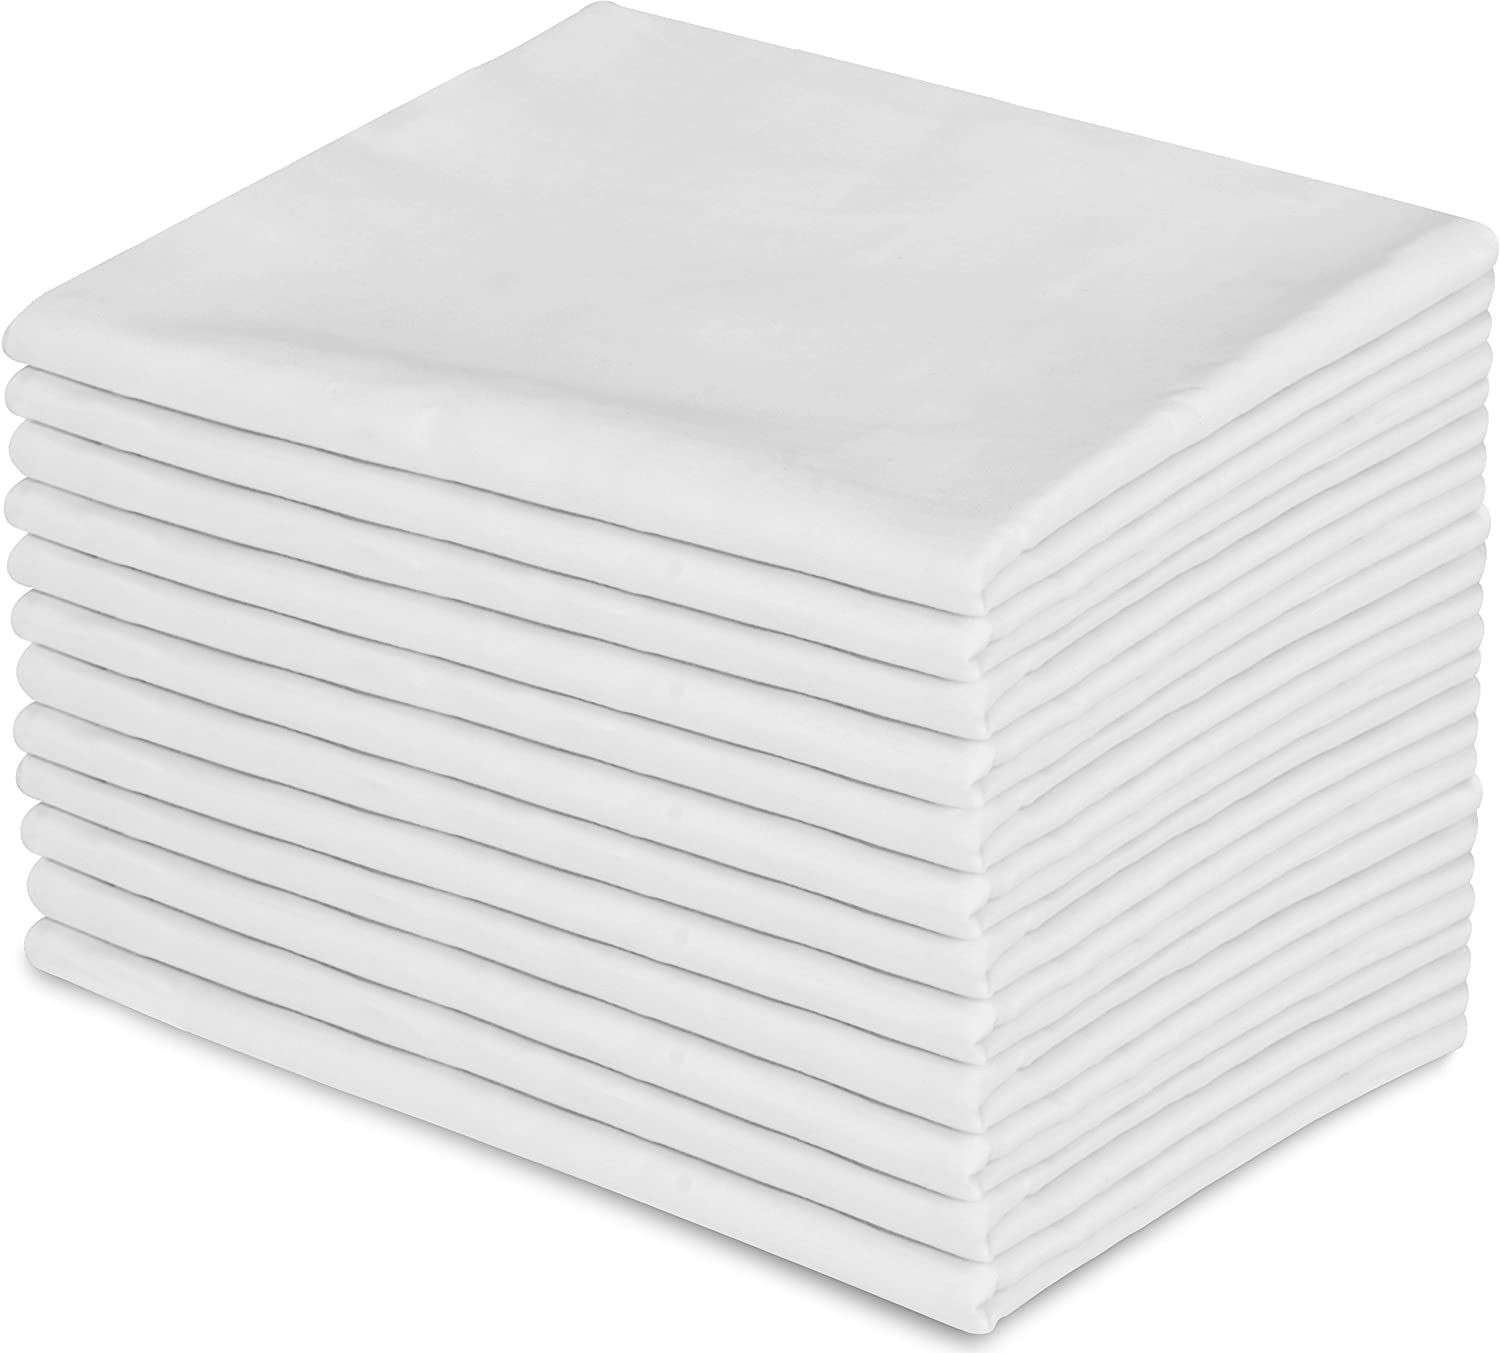 Uncategorized britannica home fashions tencel sheets -  Maximum Softness Elegant Double Stitched Tailoring Reduces Allergies And Respiratory Irritation Set Of Dozen Pillowcases By Utopia Bedding